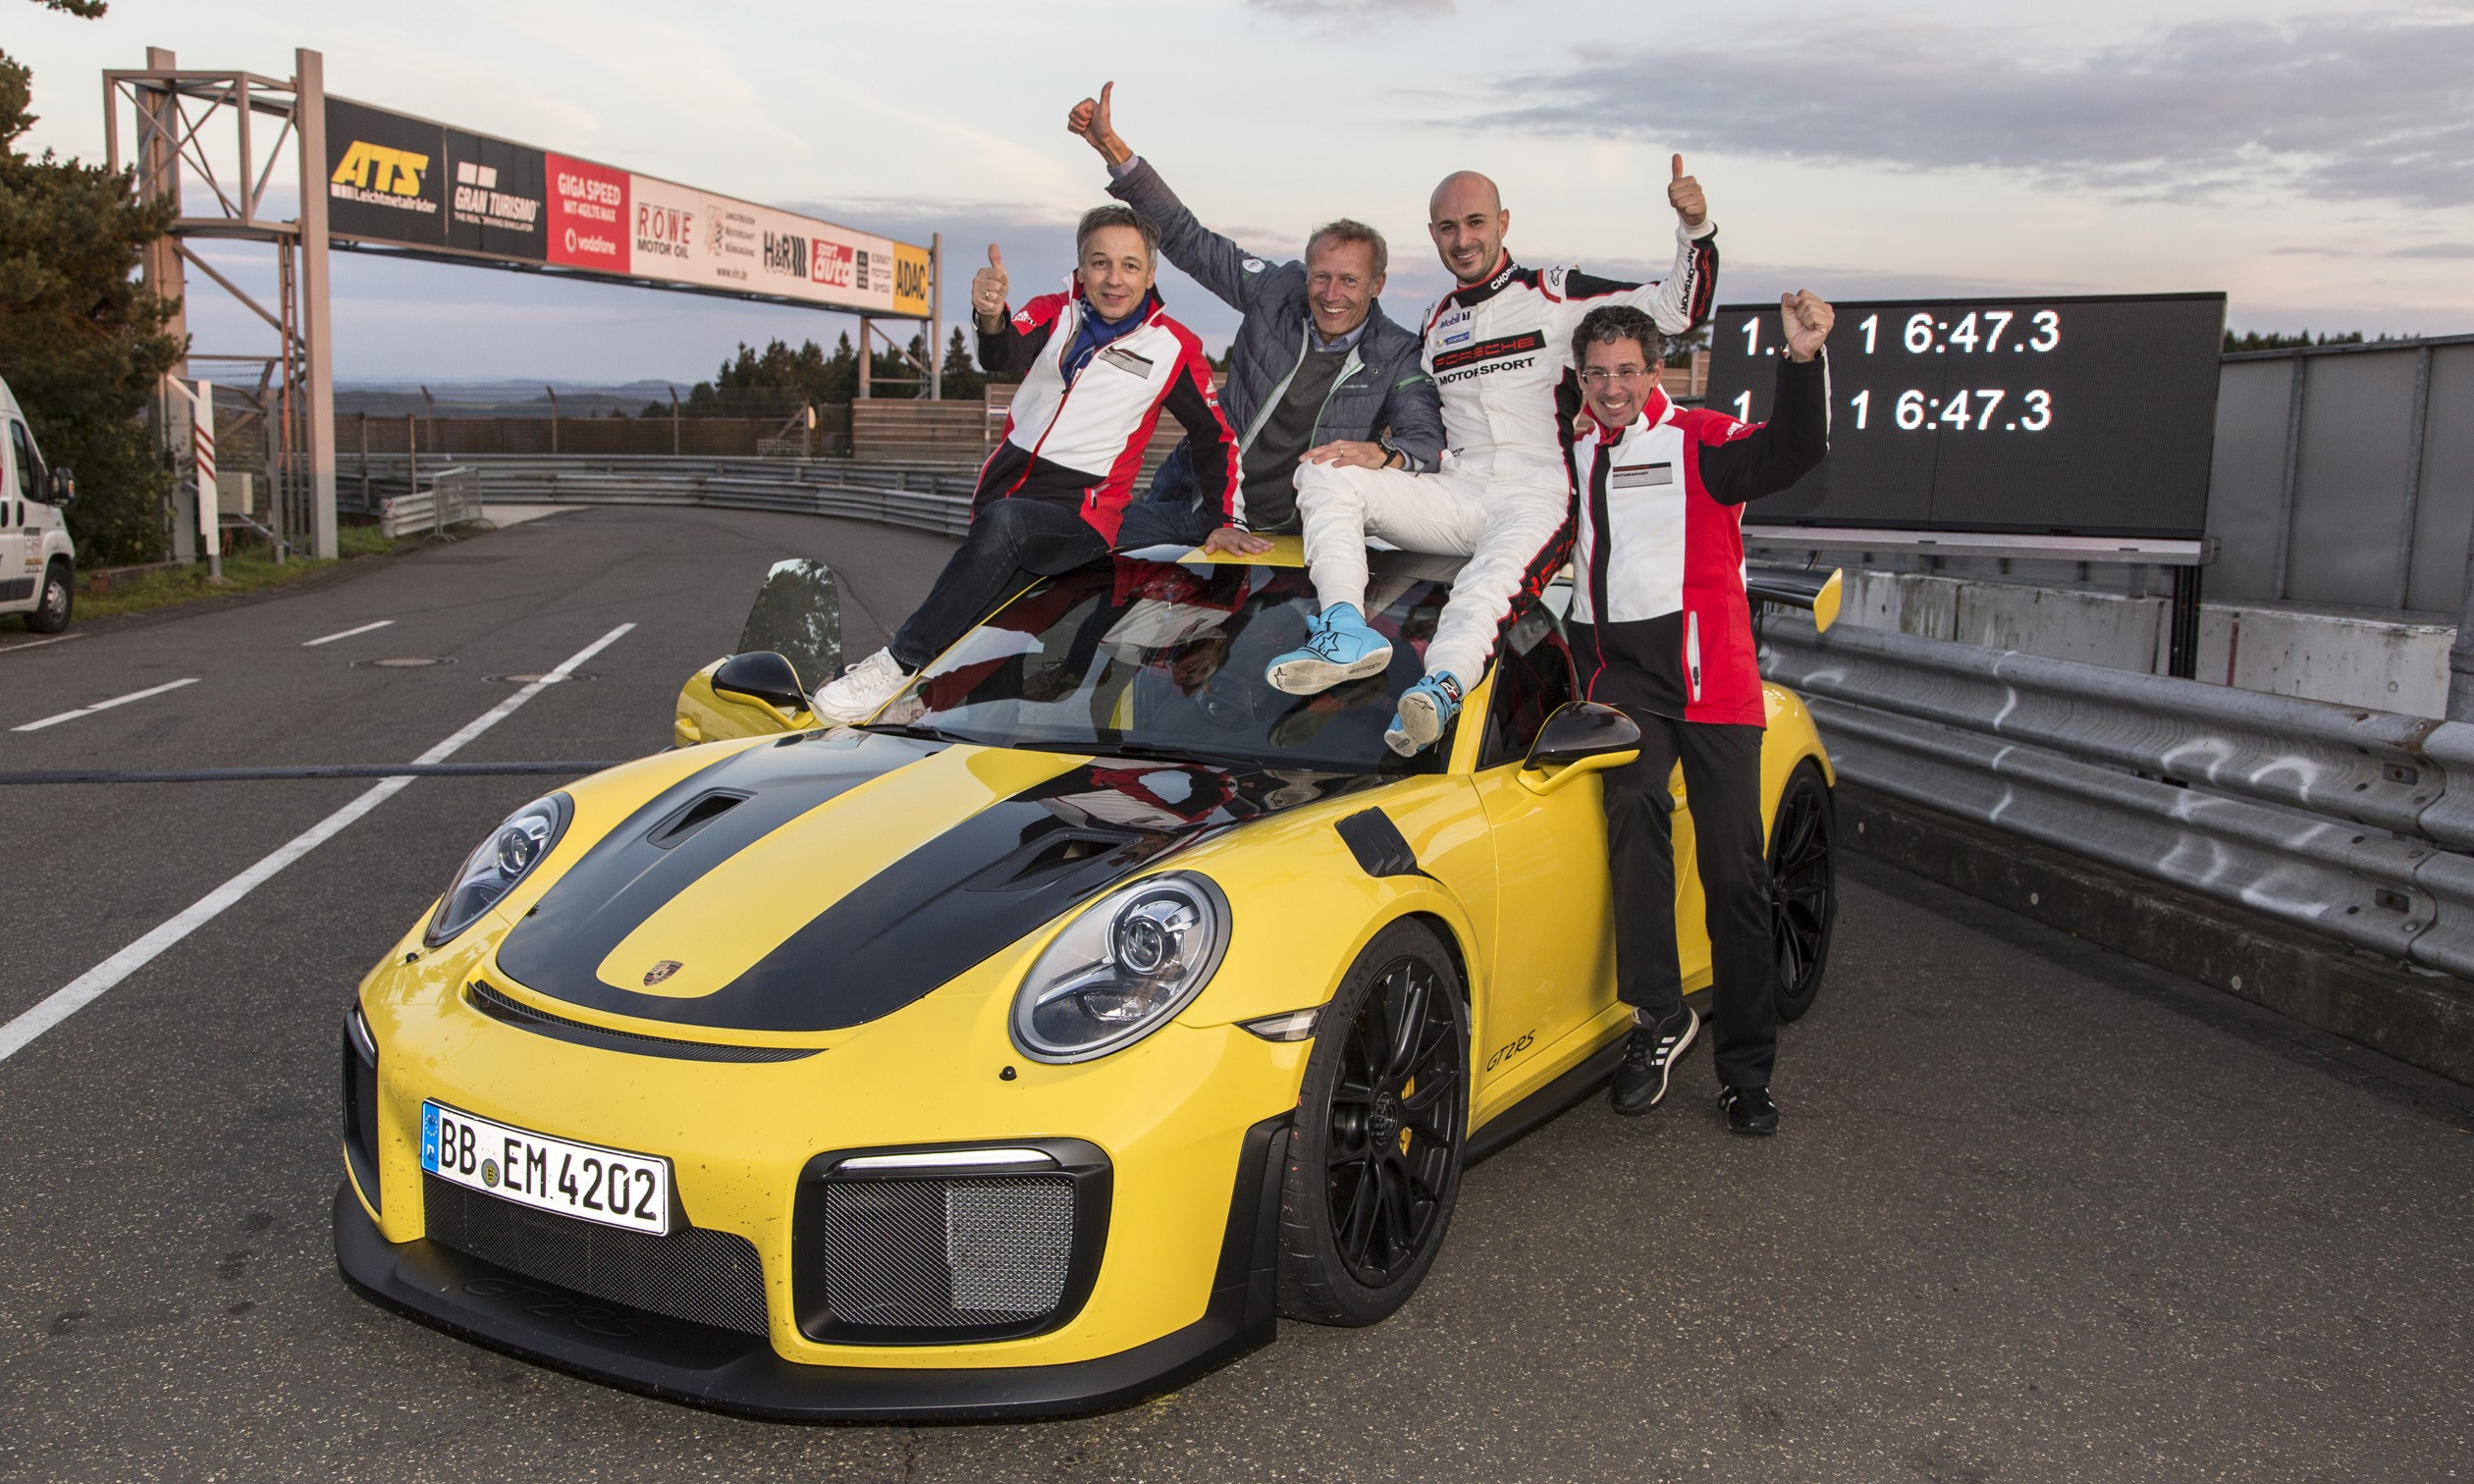 2018 porsche 911 gt2 rs nurburgring record is in 6 47 3. Black Bedroom Furniture Sets. Home Design Ideas